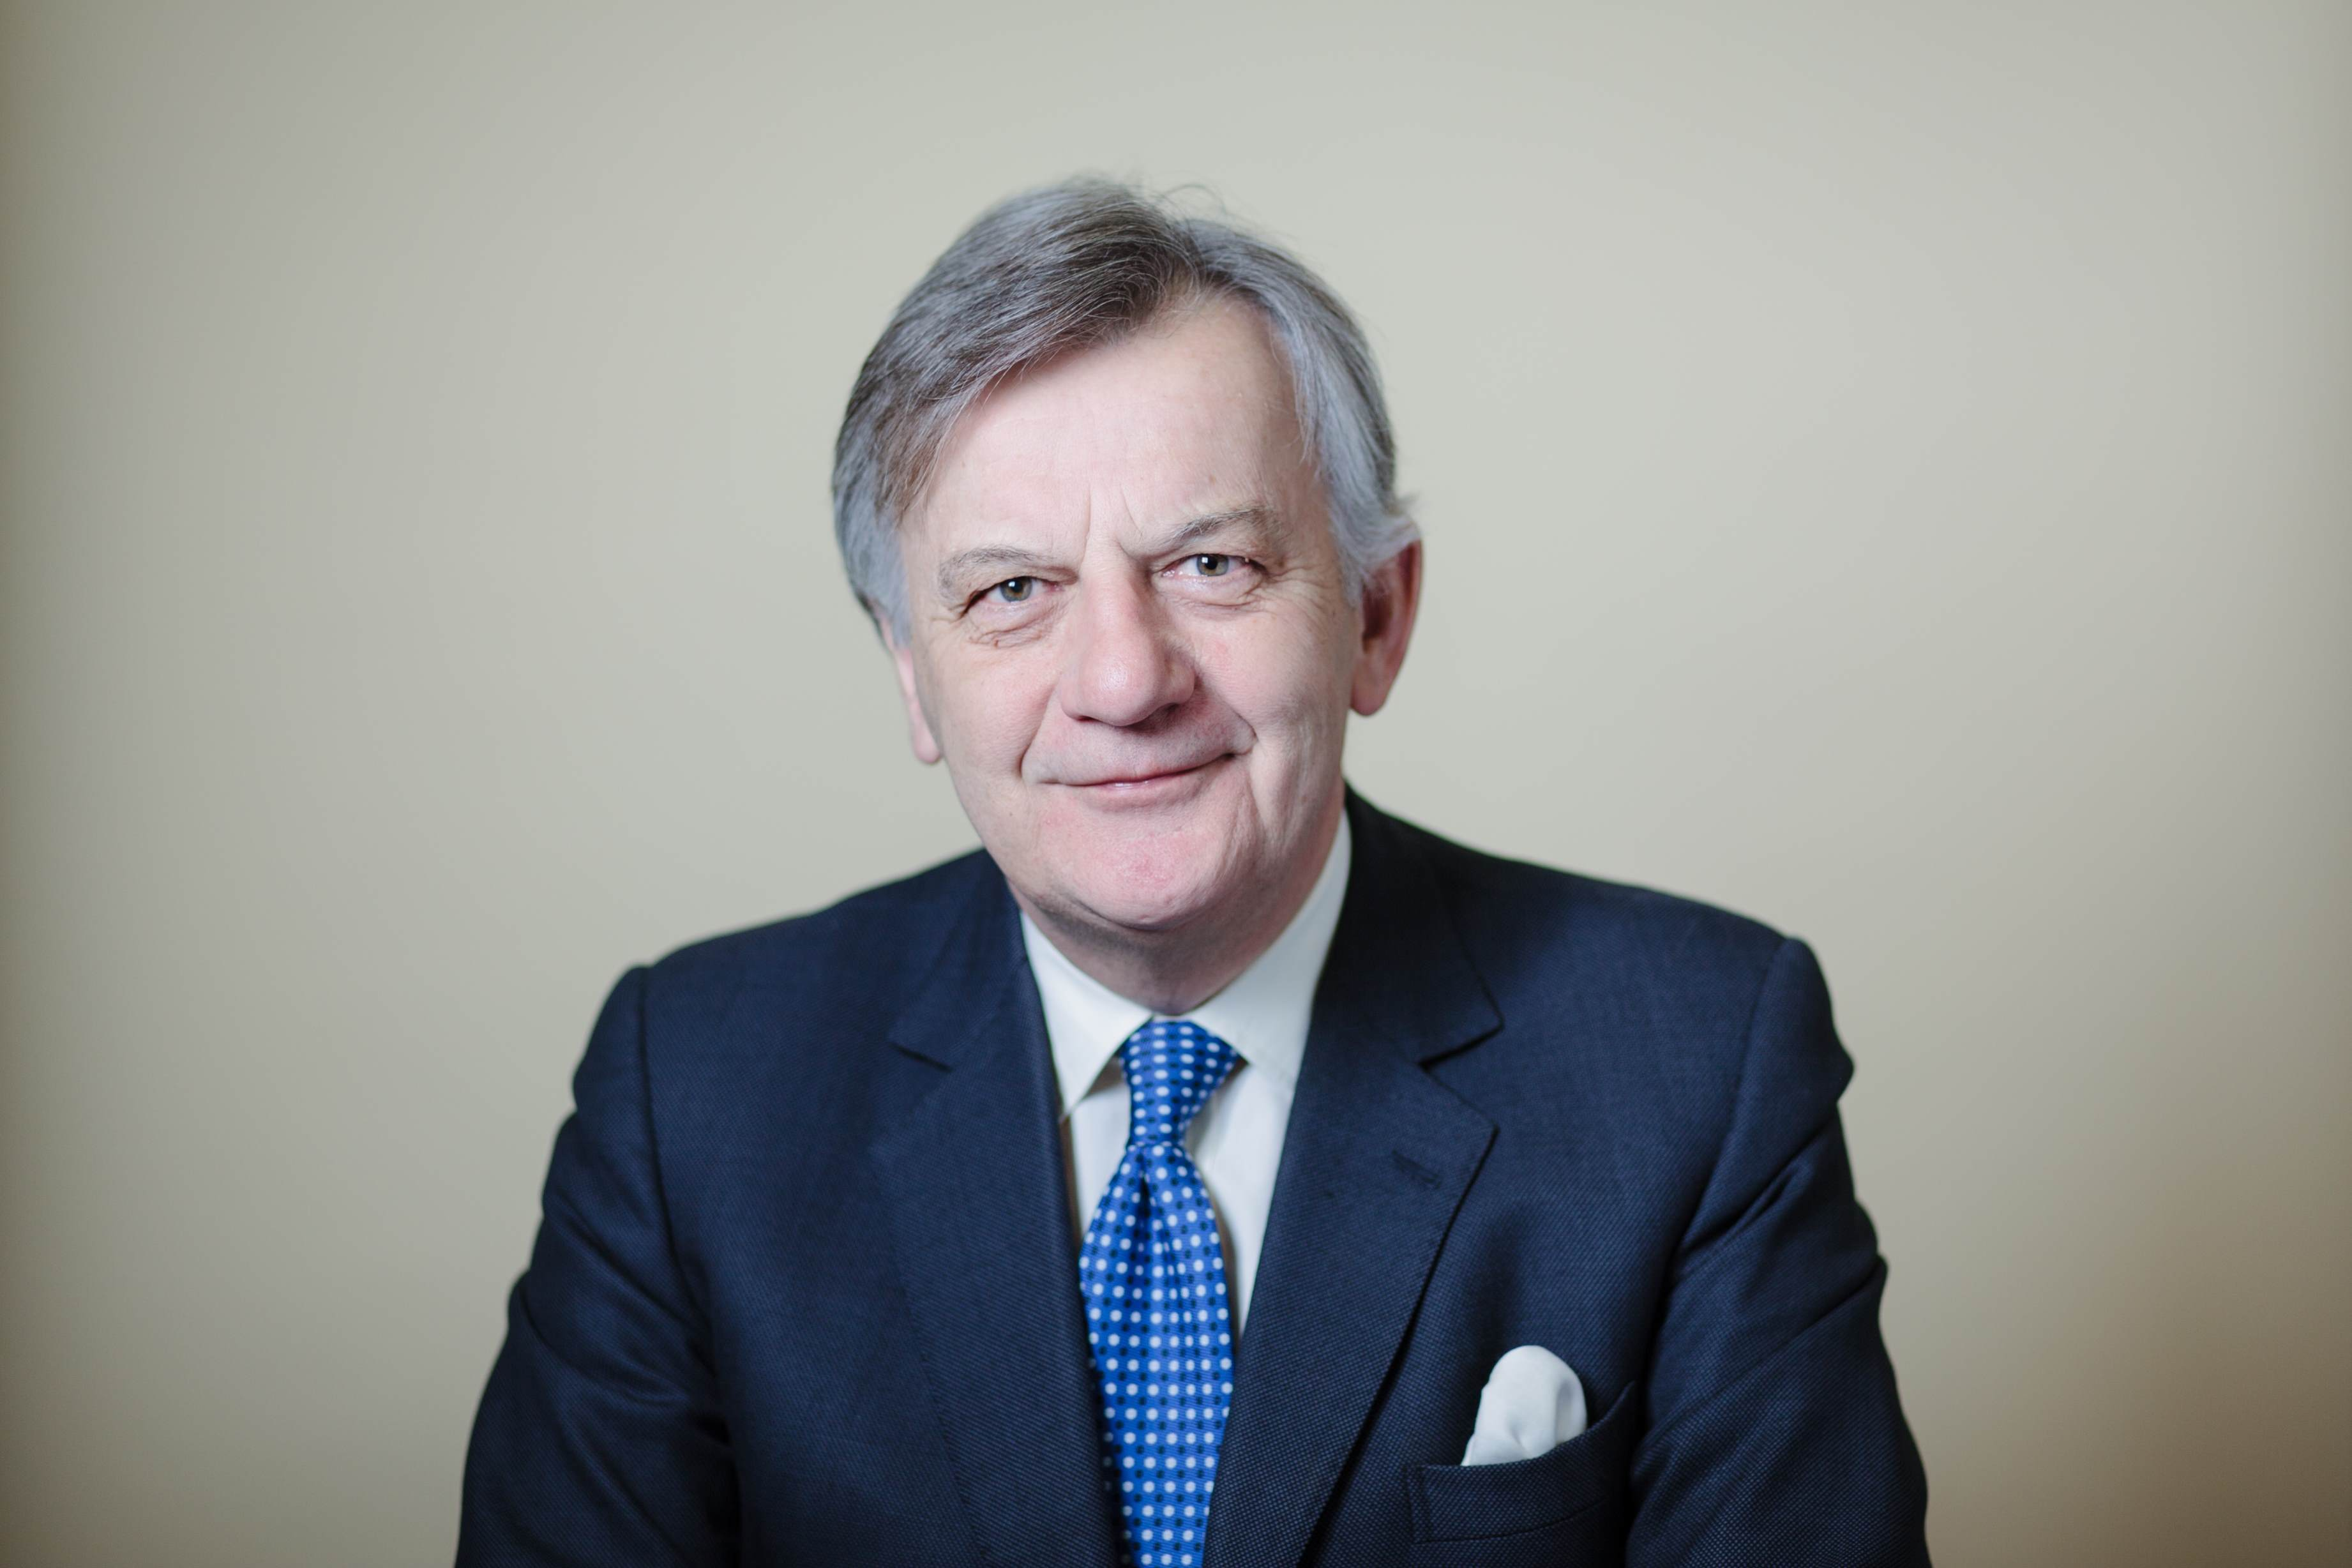 Nigel Turner, Non-Executive Director (Senior Independent Director)